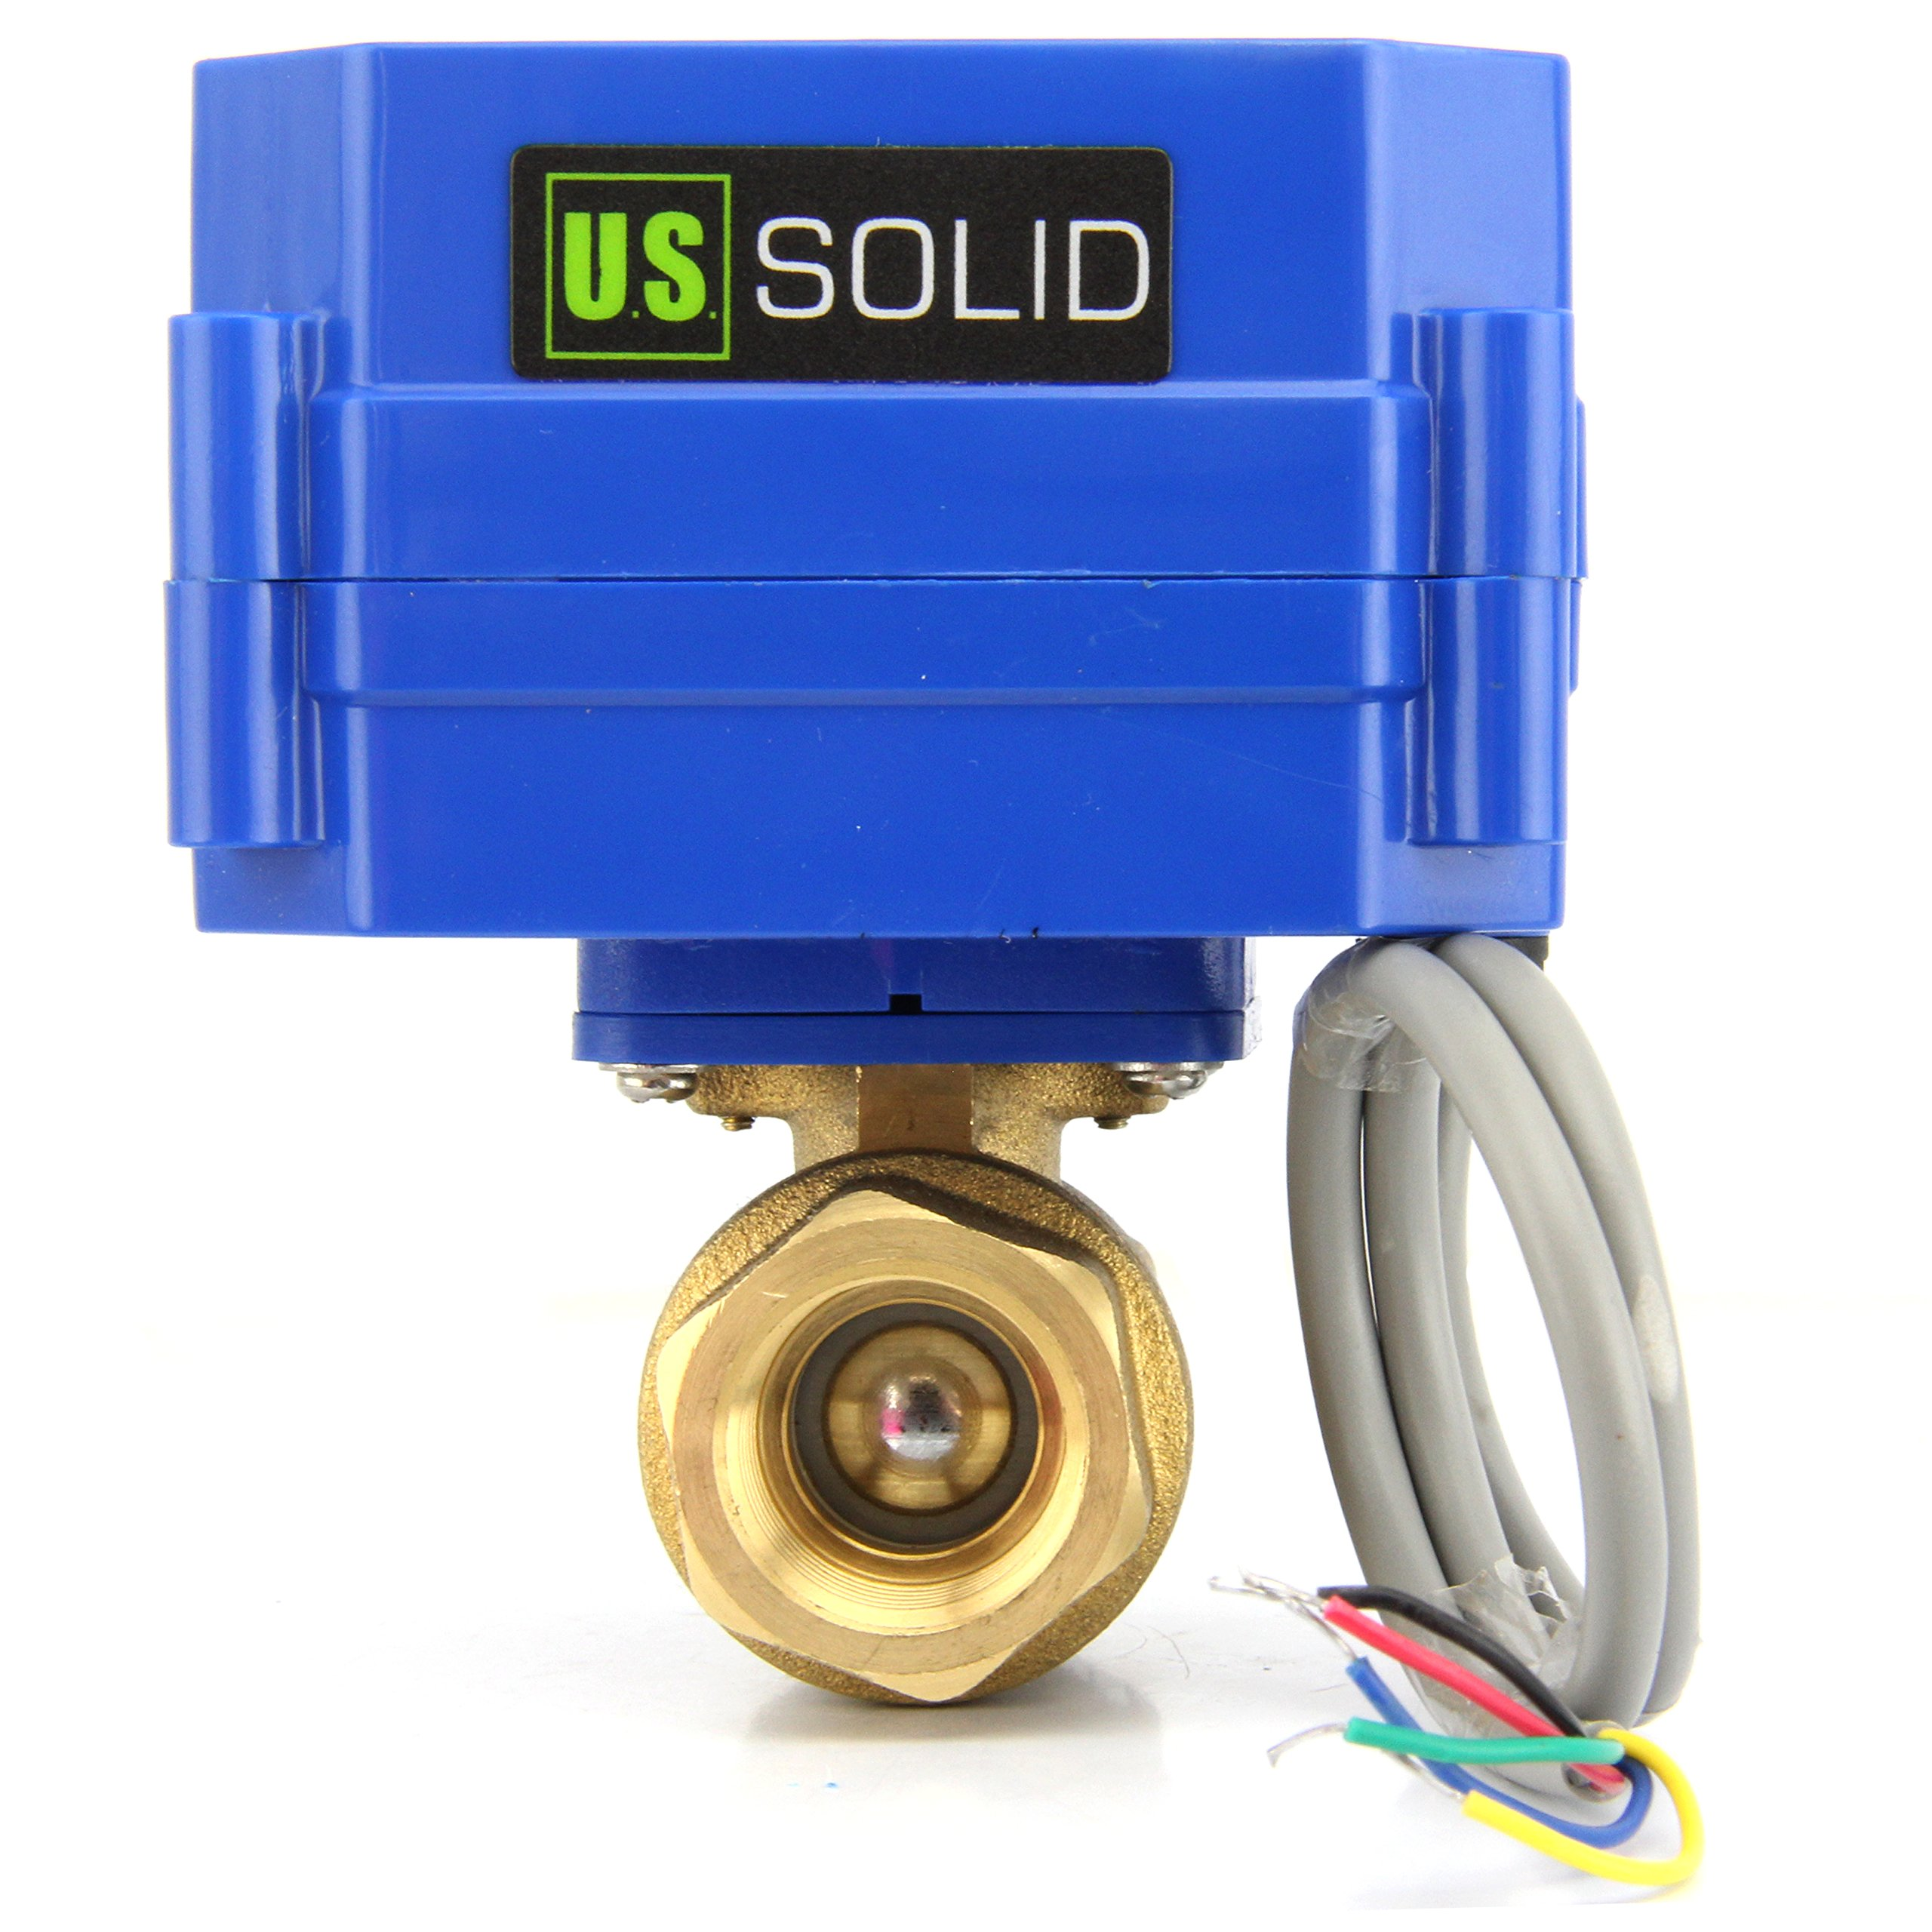 Motorized Ball Valve- 1/2'' Brass Electrical Ball Valve with Full Port, 9-24V DC 5 Wire Setup, can be used with Indicator Lights, [Indicate Open or Closed Position] by U.S. Solid